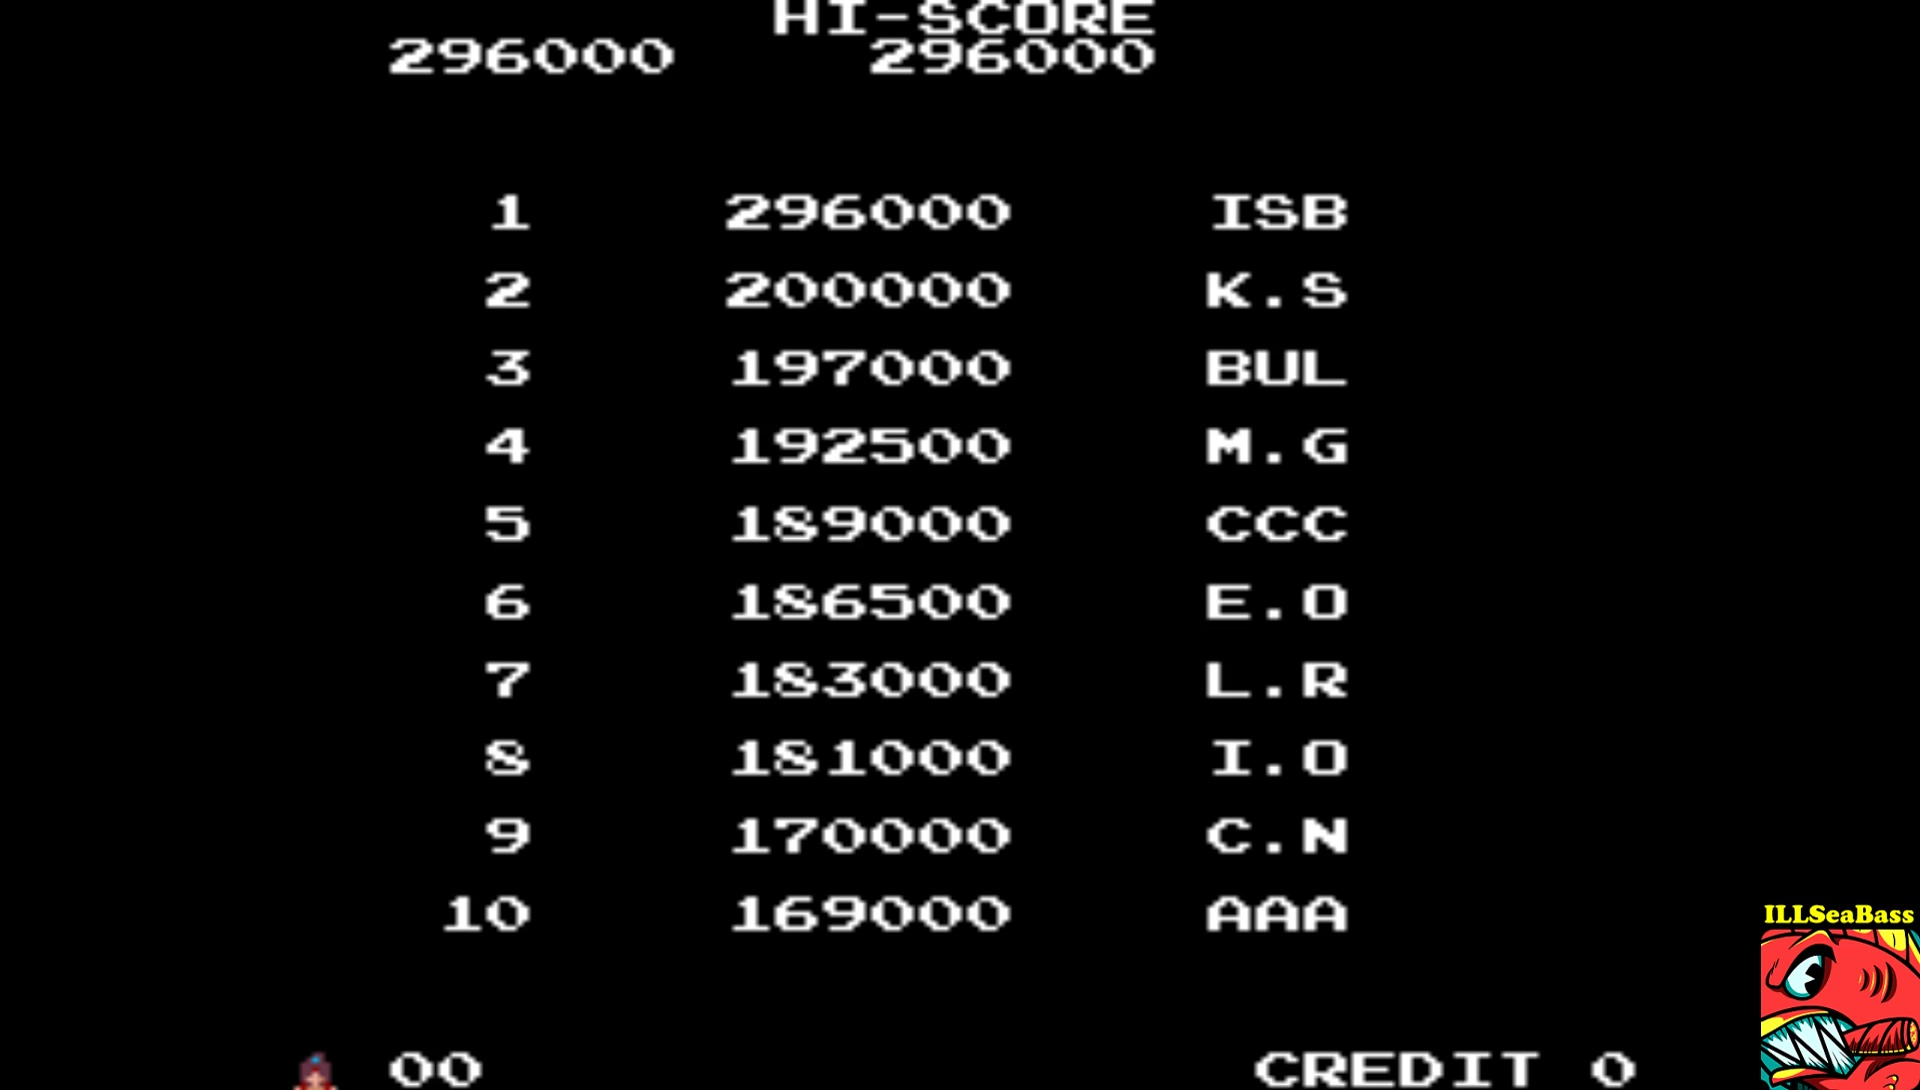 ILLSeaBass: The Legend of Kage (Arcade Emulated / M.A.M.E.) 296,000 points on 2017-06-17 22:10:12